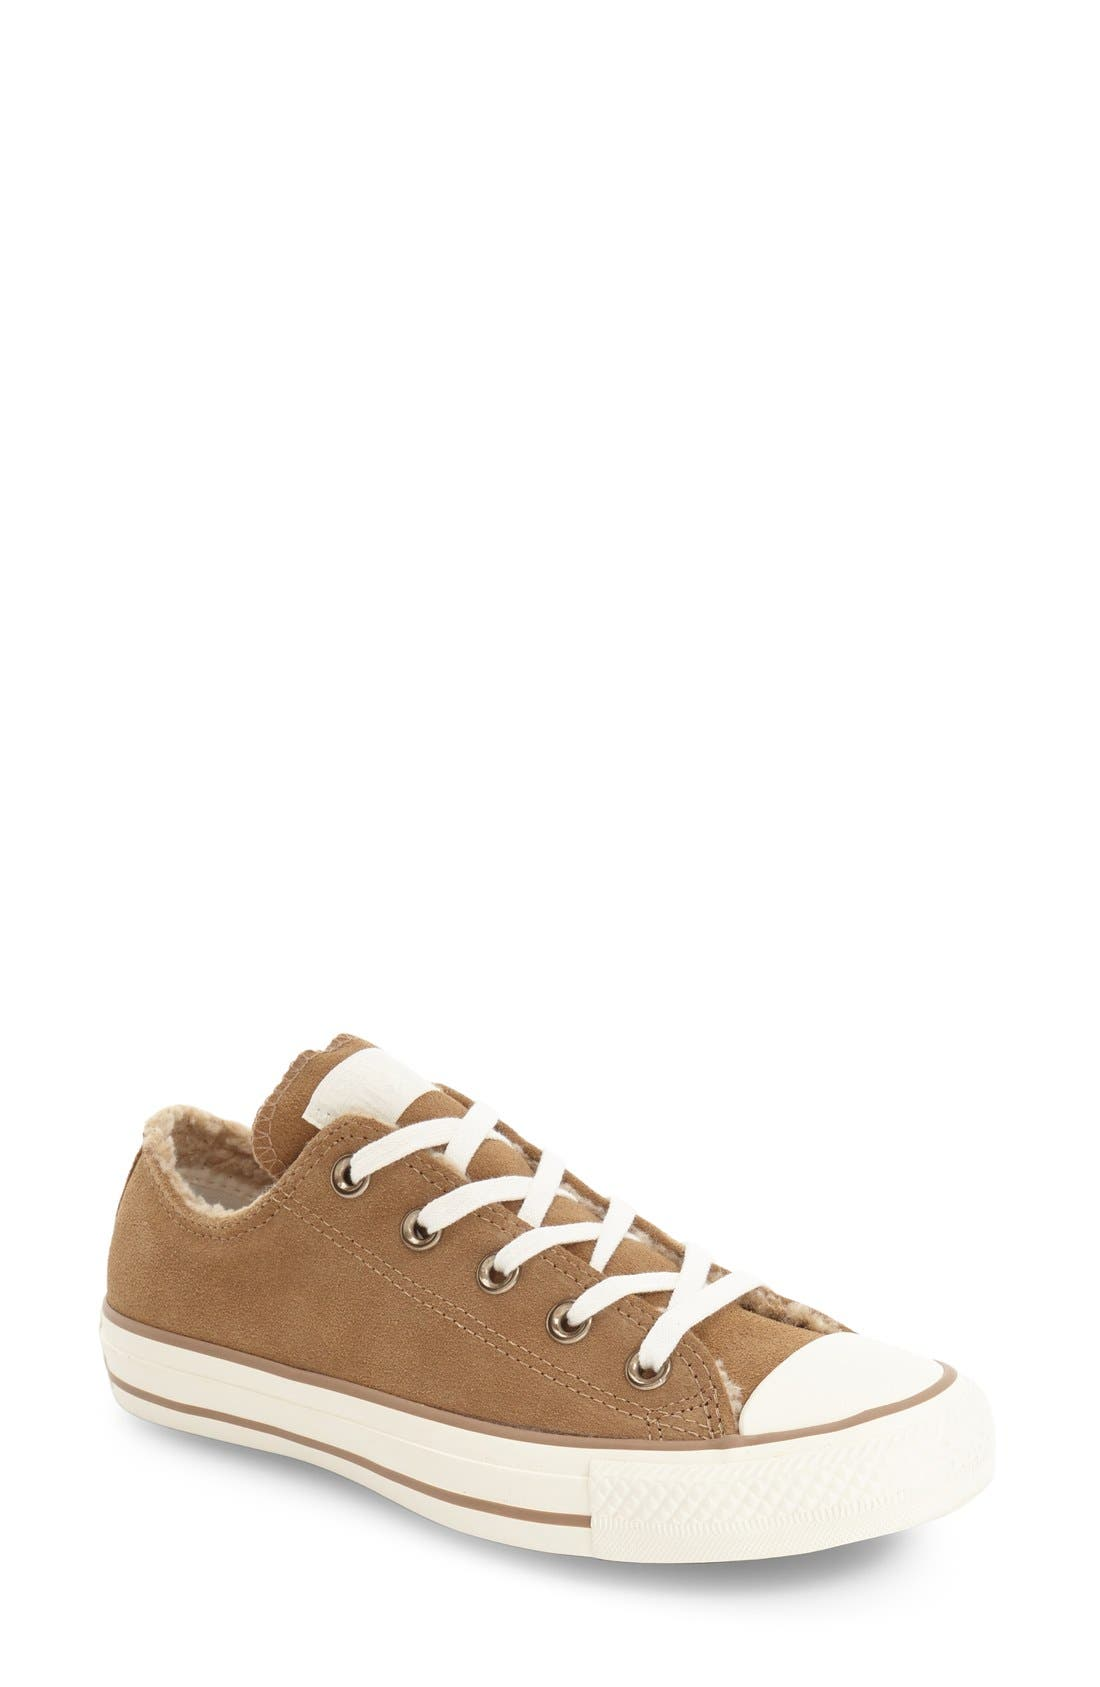 Alternate Image 1 Selected - Converse Chuck Taylor® All Star® Faux Shearling Lined Low Top Sneaker (Women)